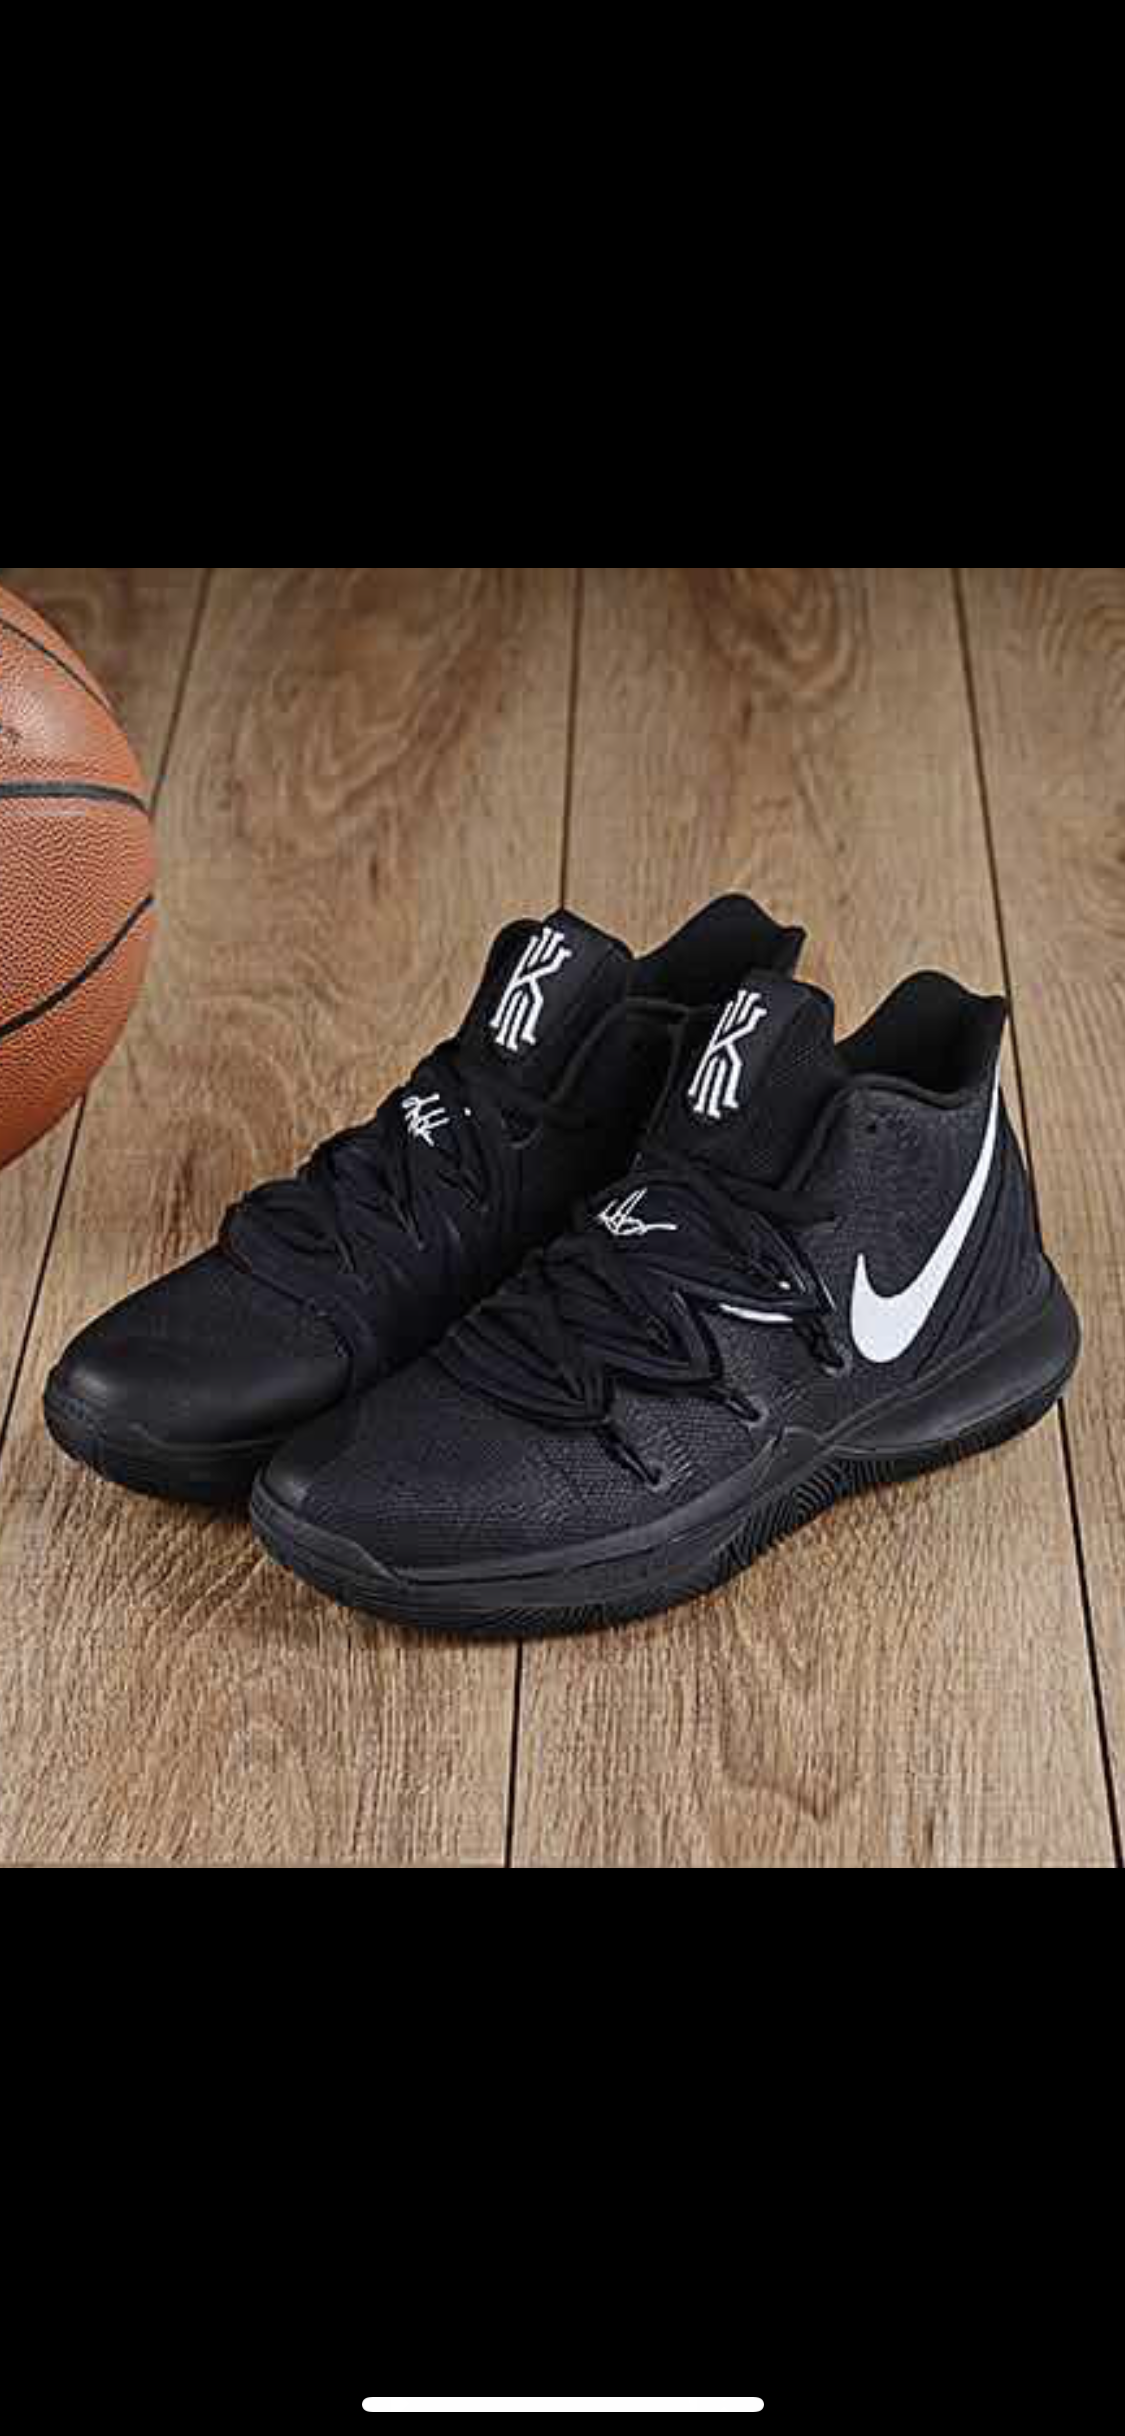 Nike Kyrie 5 Cool Black Shoes